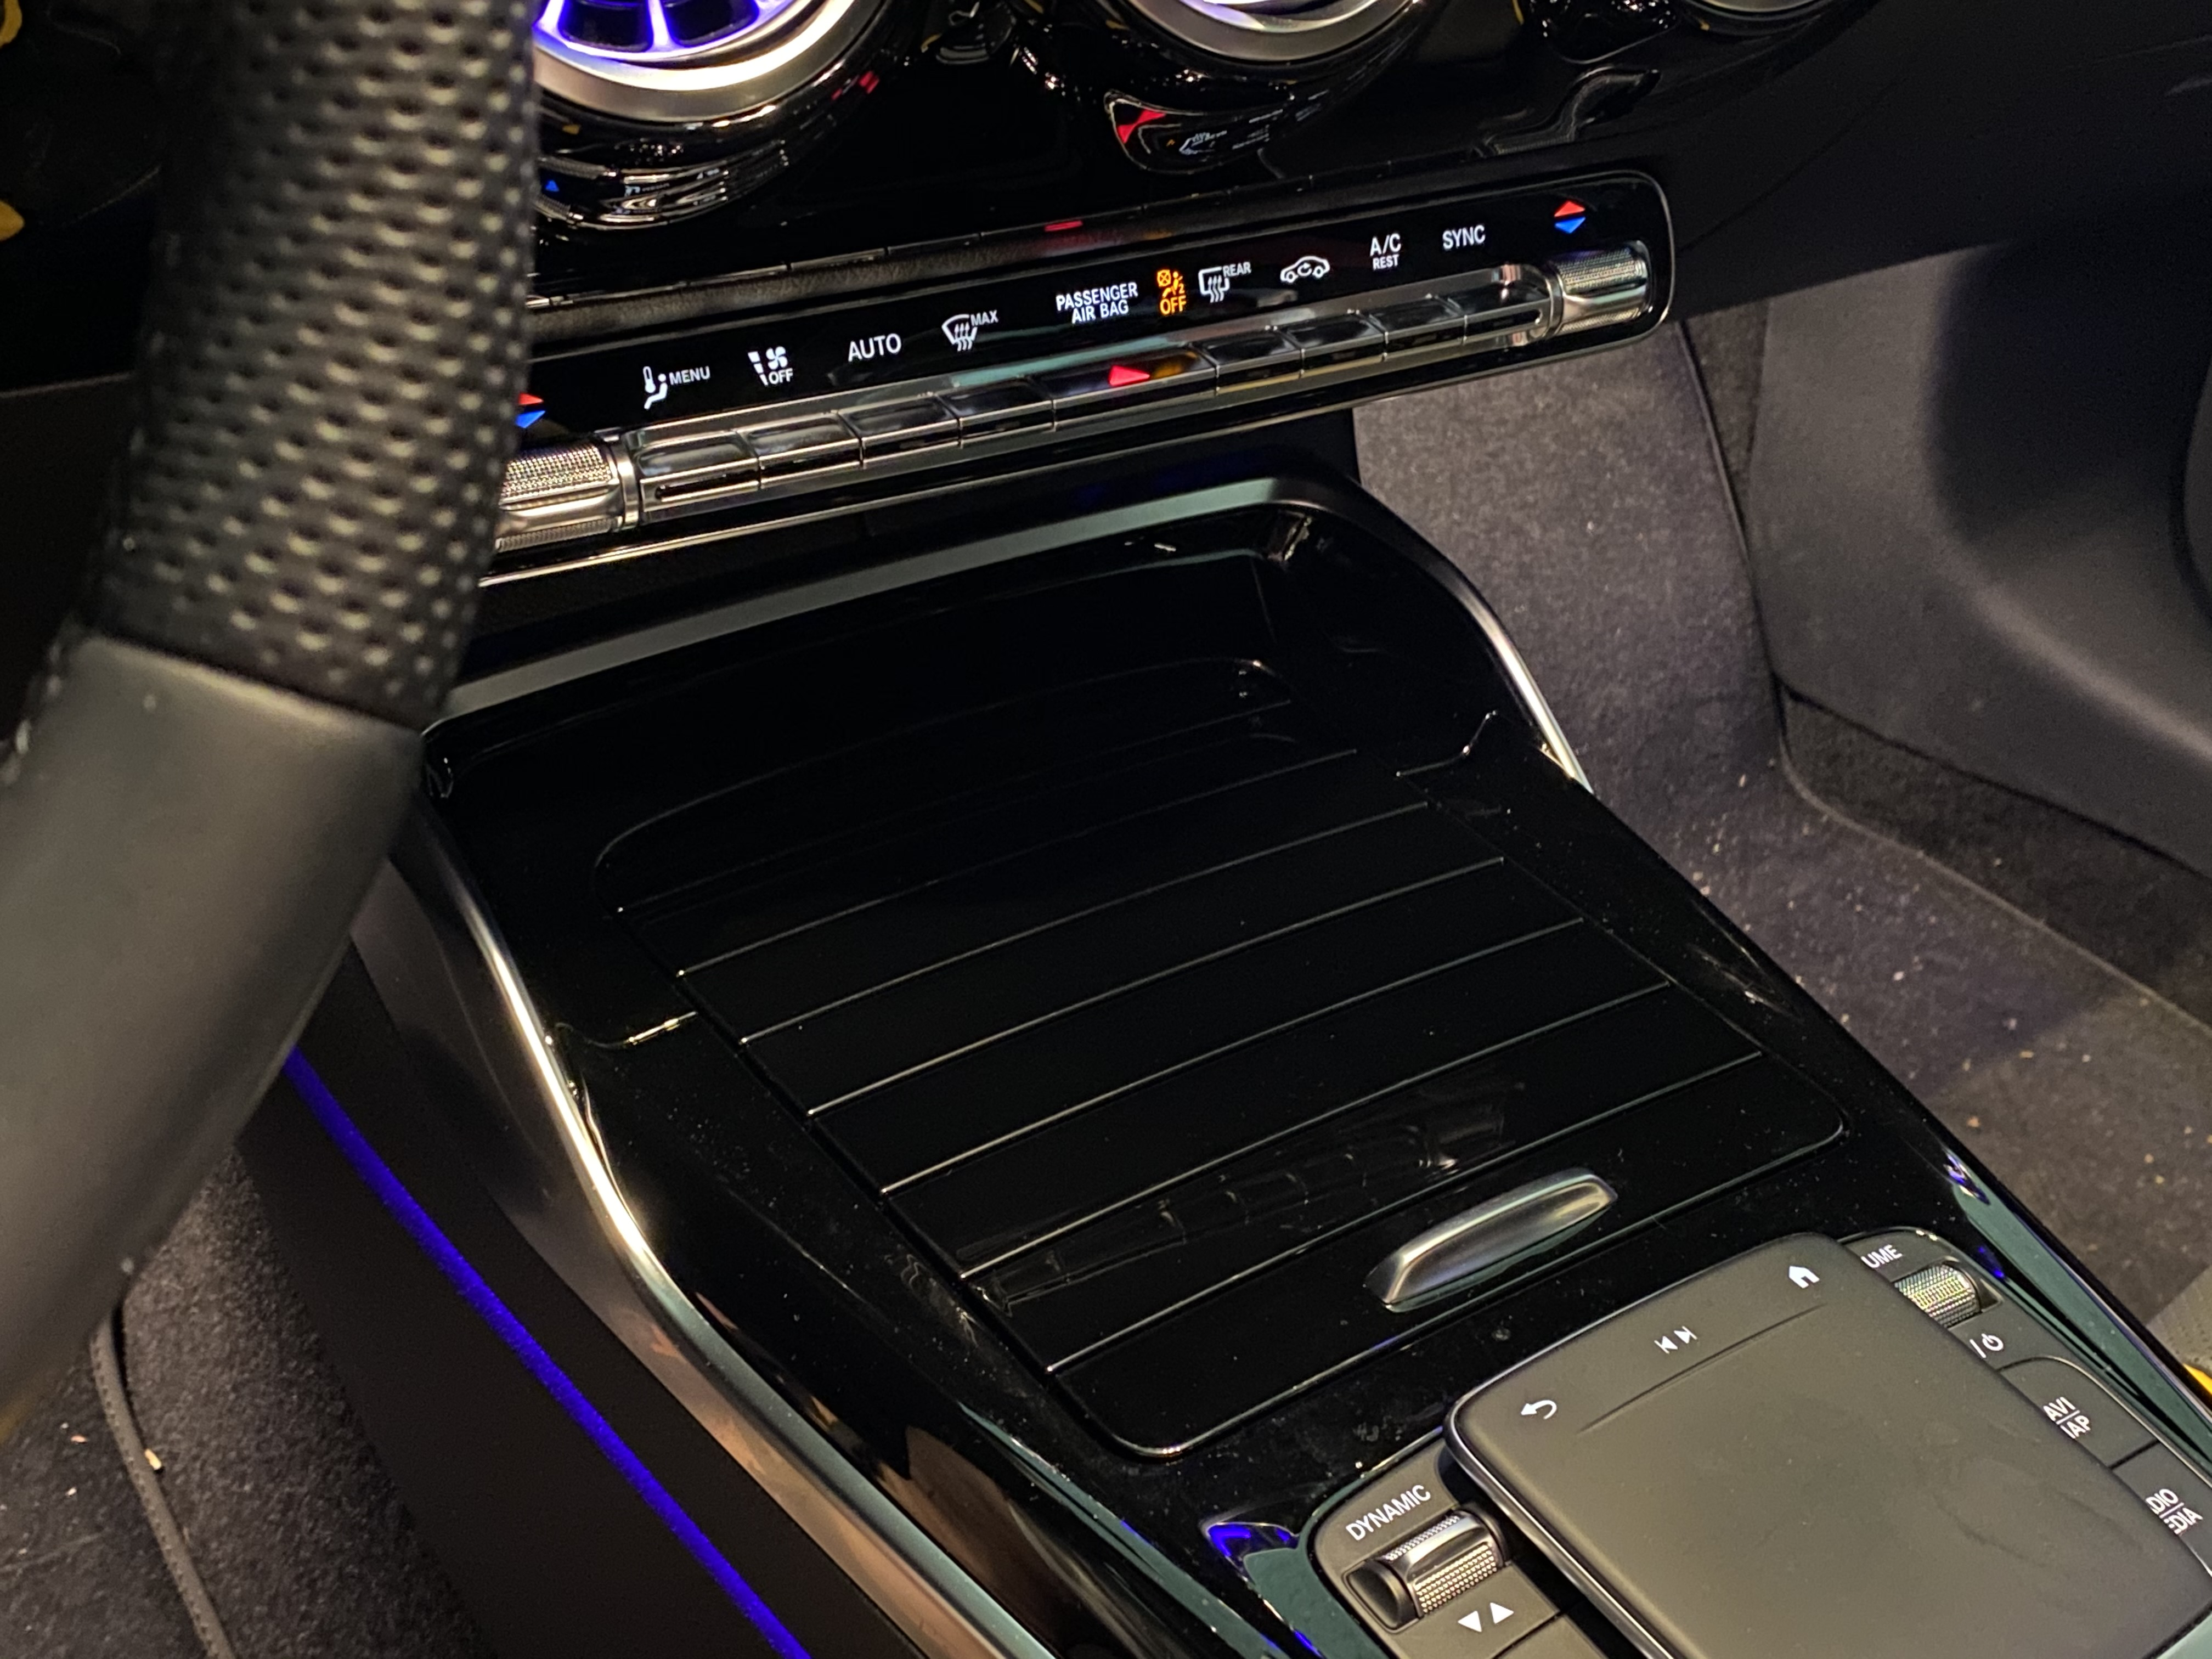 a45s_interior_front05.jpg